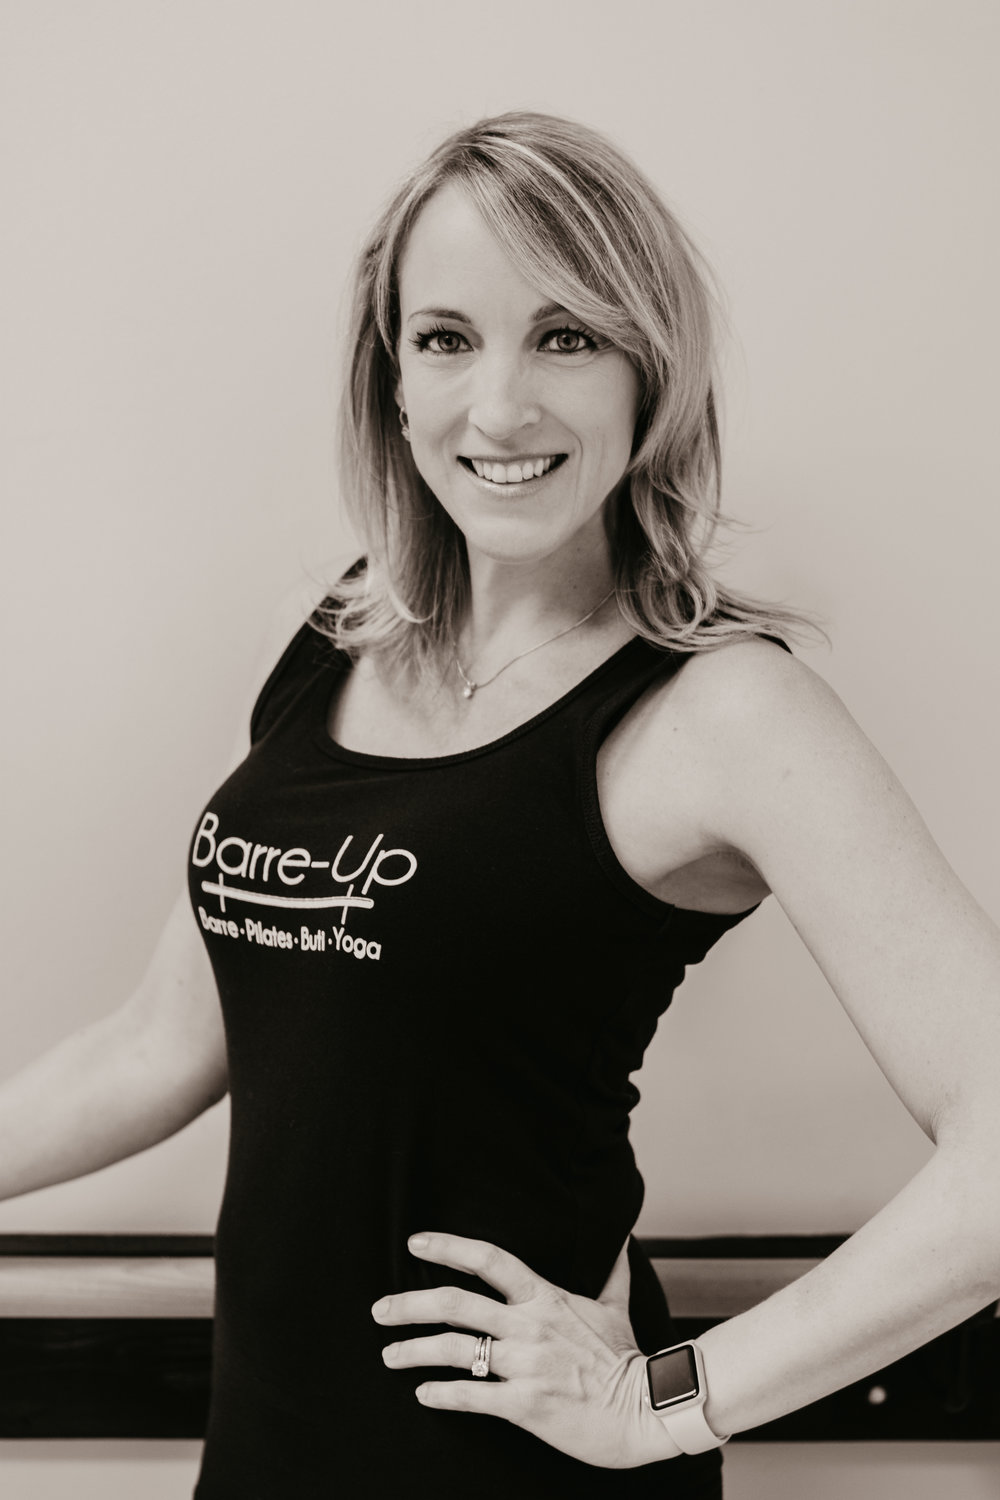 Amanda B. - Amanda began teaching group fitness in 2006, teaching spin, kickboxing, Pilates, yoga and circuit classes. Over the past three years she has been practicing barre as a student and has LOVED the results! She is excited to pass along that enthusiasm for barre as well as bringing in some of her experience from other genres to the studio. Along with her barre certification, she is currently working on her RYT-200 and will graduate in April.Amanda is a native North Carolinian and recently moved back to Raleigh from California with her husband and two kids. Amanda spends her time outside the studio as a stay-at-home mom, but also enjoys ballroom and country western & swing dancing. She holds two world championship titles in country western & swing dancing.